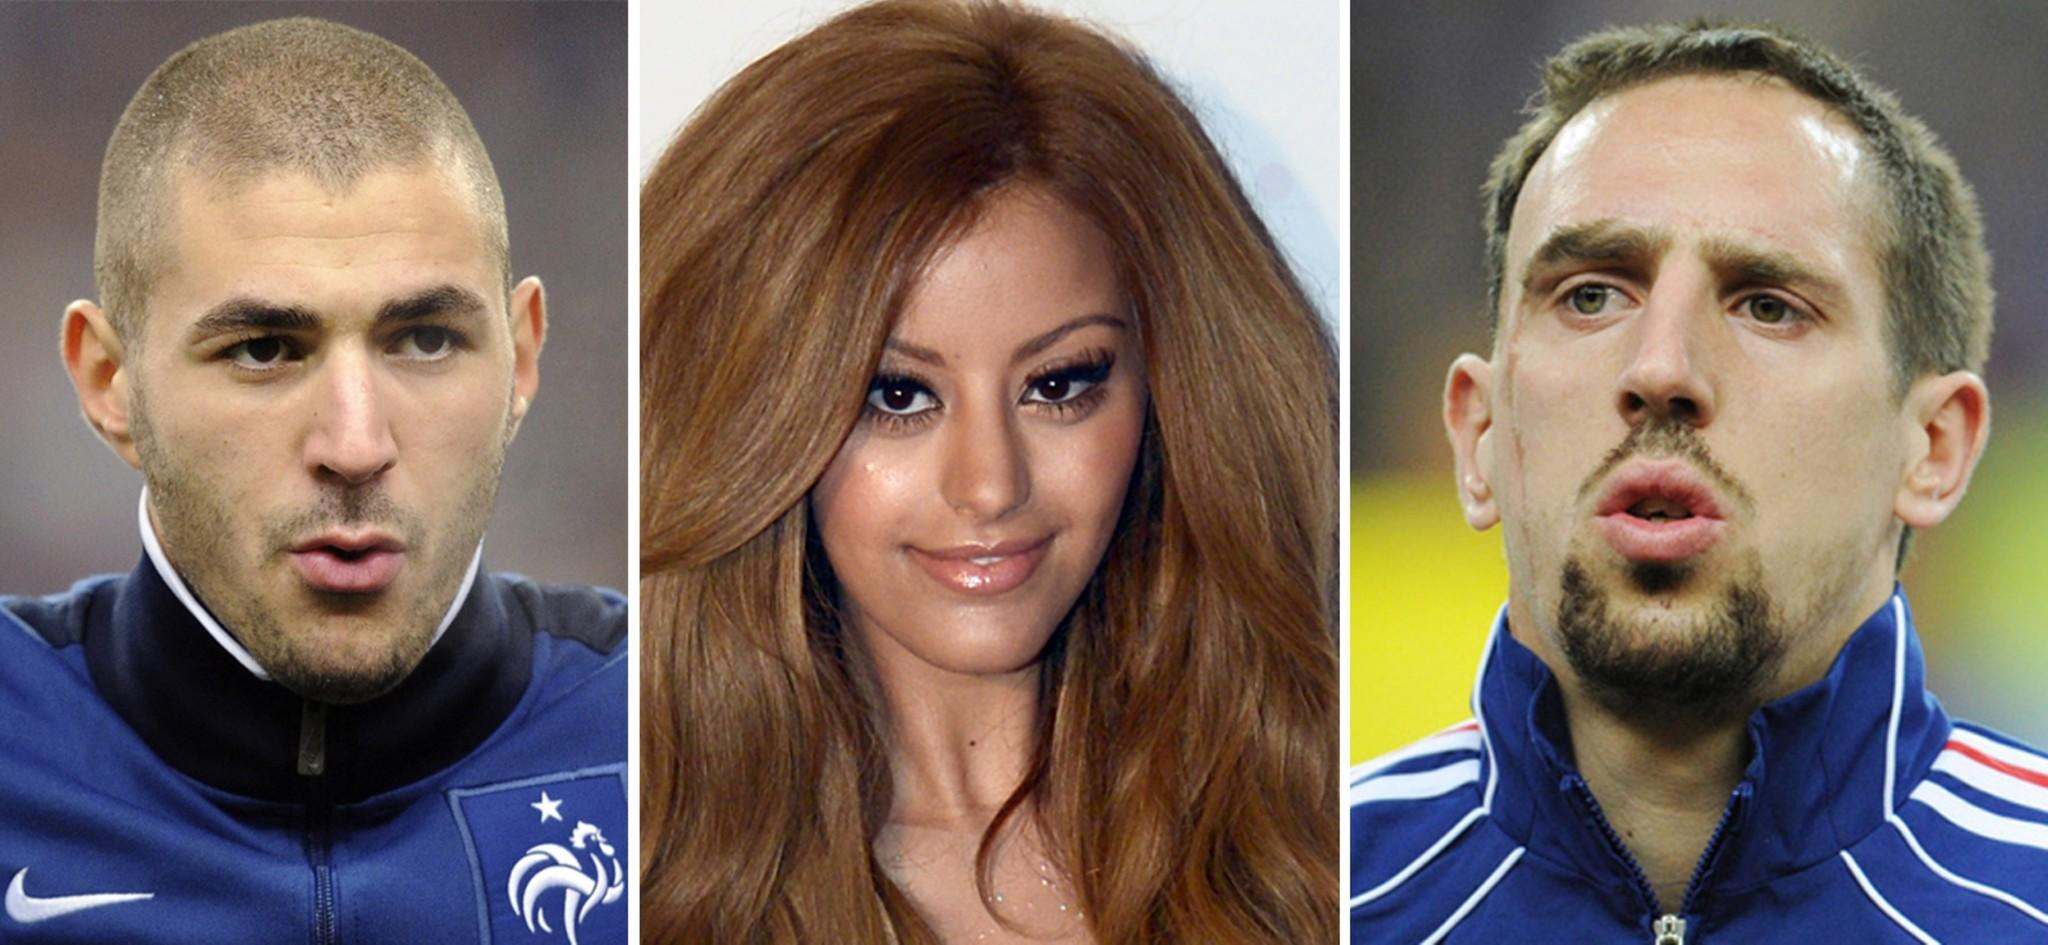 This combination made on January 20, 2014 shows AFP file images of French international footballers Franck Ribery and Karim Benzema (L) and a picture of French designer Zahia Dehar taken in Paris on July 3, 2013. Benzema and Ribery will go on trial in Paris on January 20, 2014 for soliciting Zahia Dehar, a minor, for prostitution.